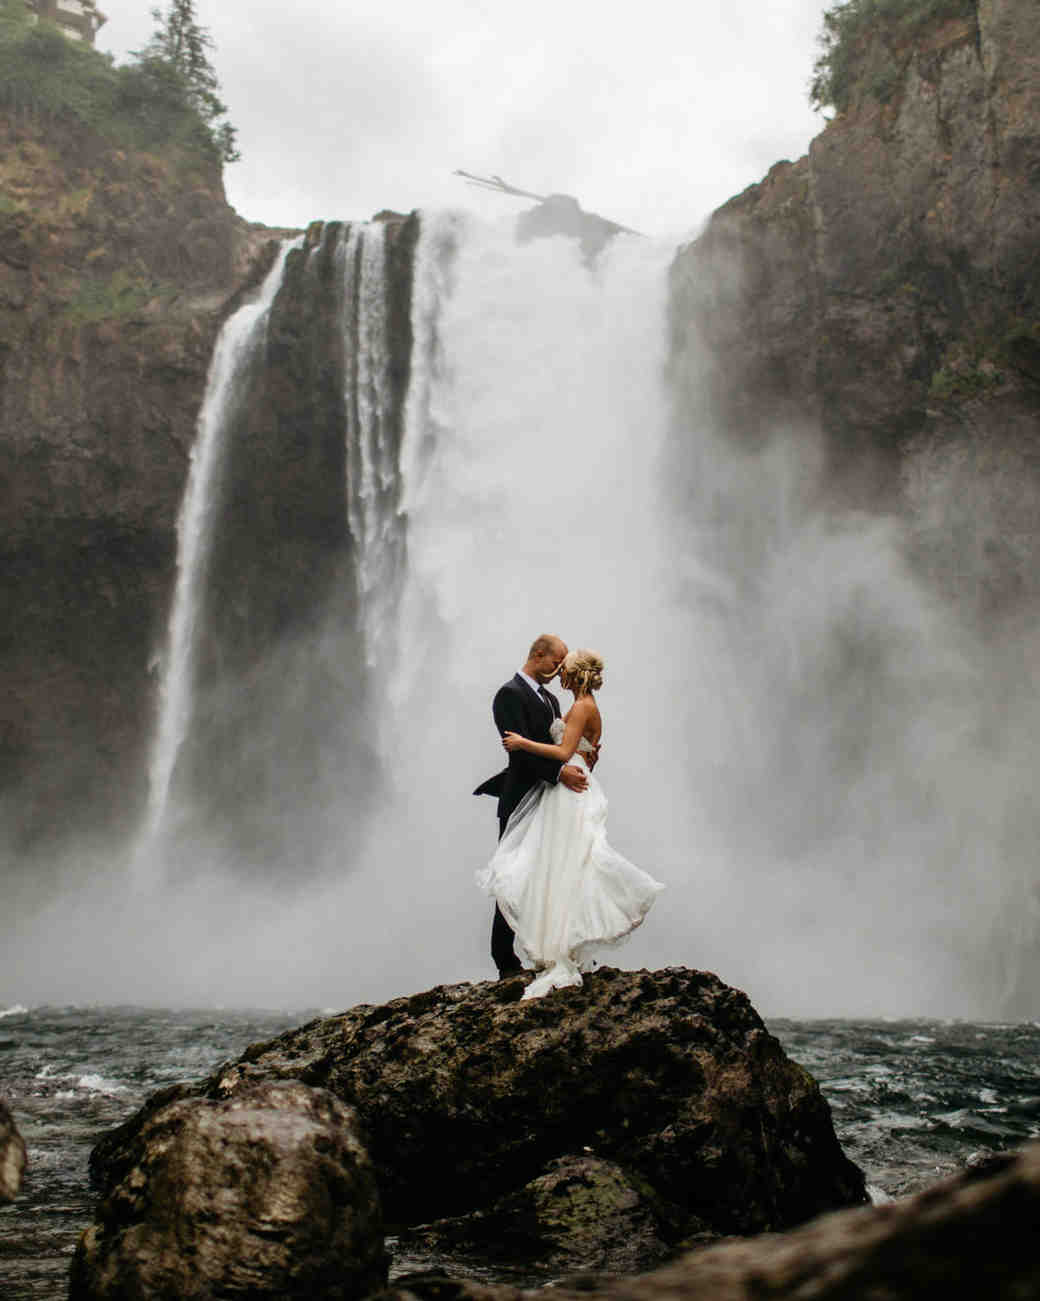 epic wedding photos benj haisch